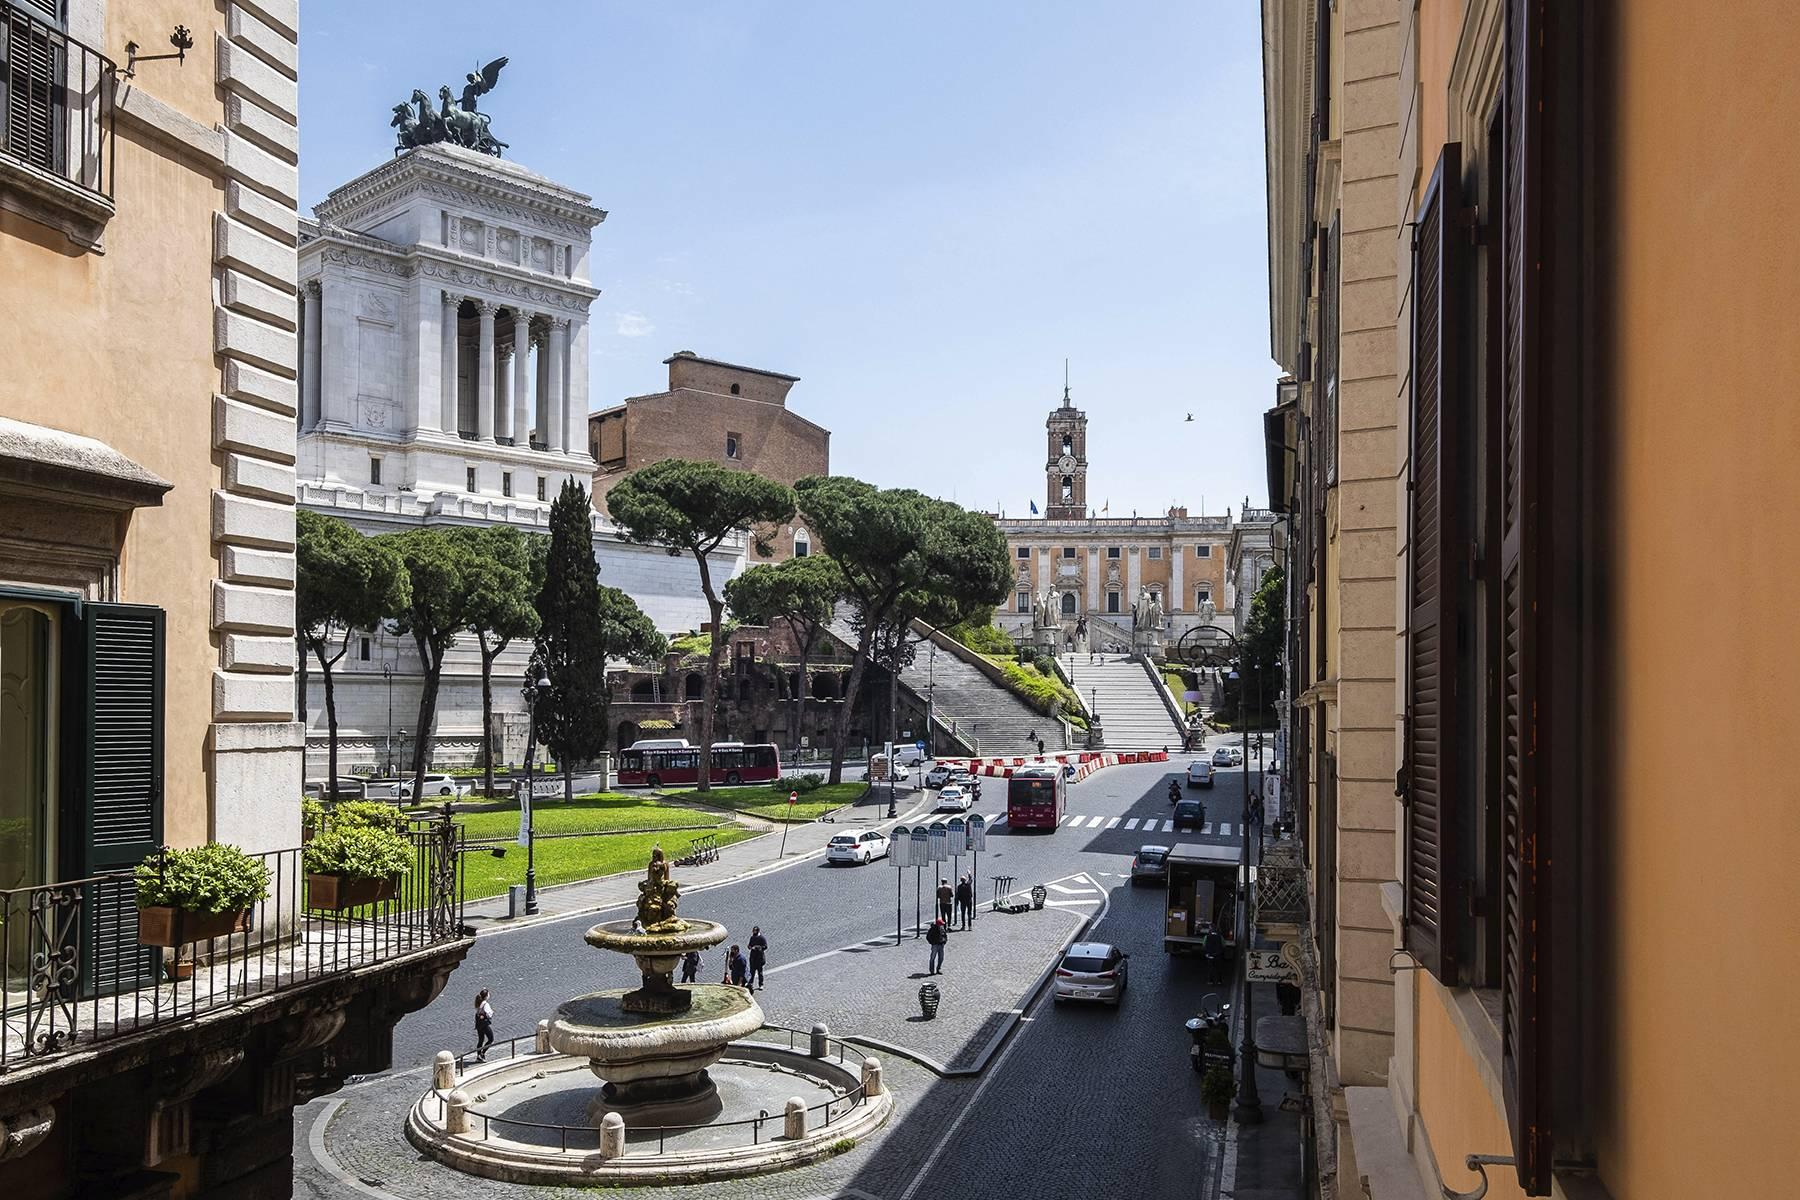 Elegant apartment overlooking the Capitoline hill - 1